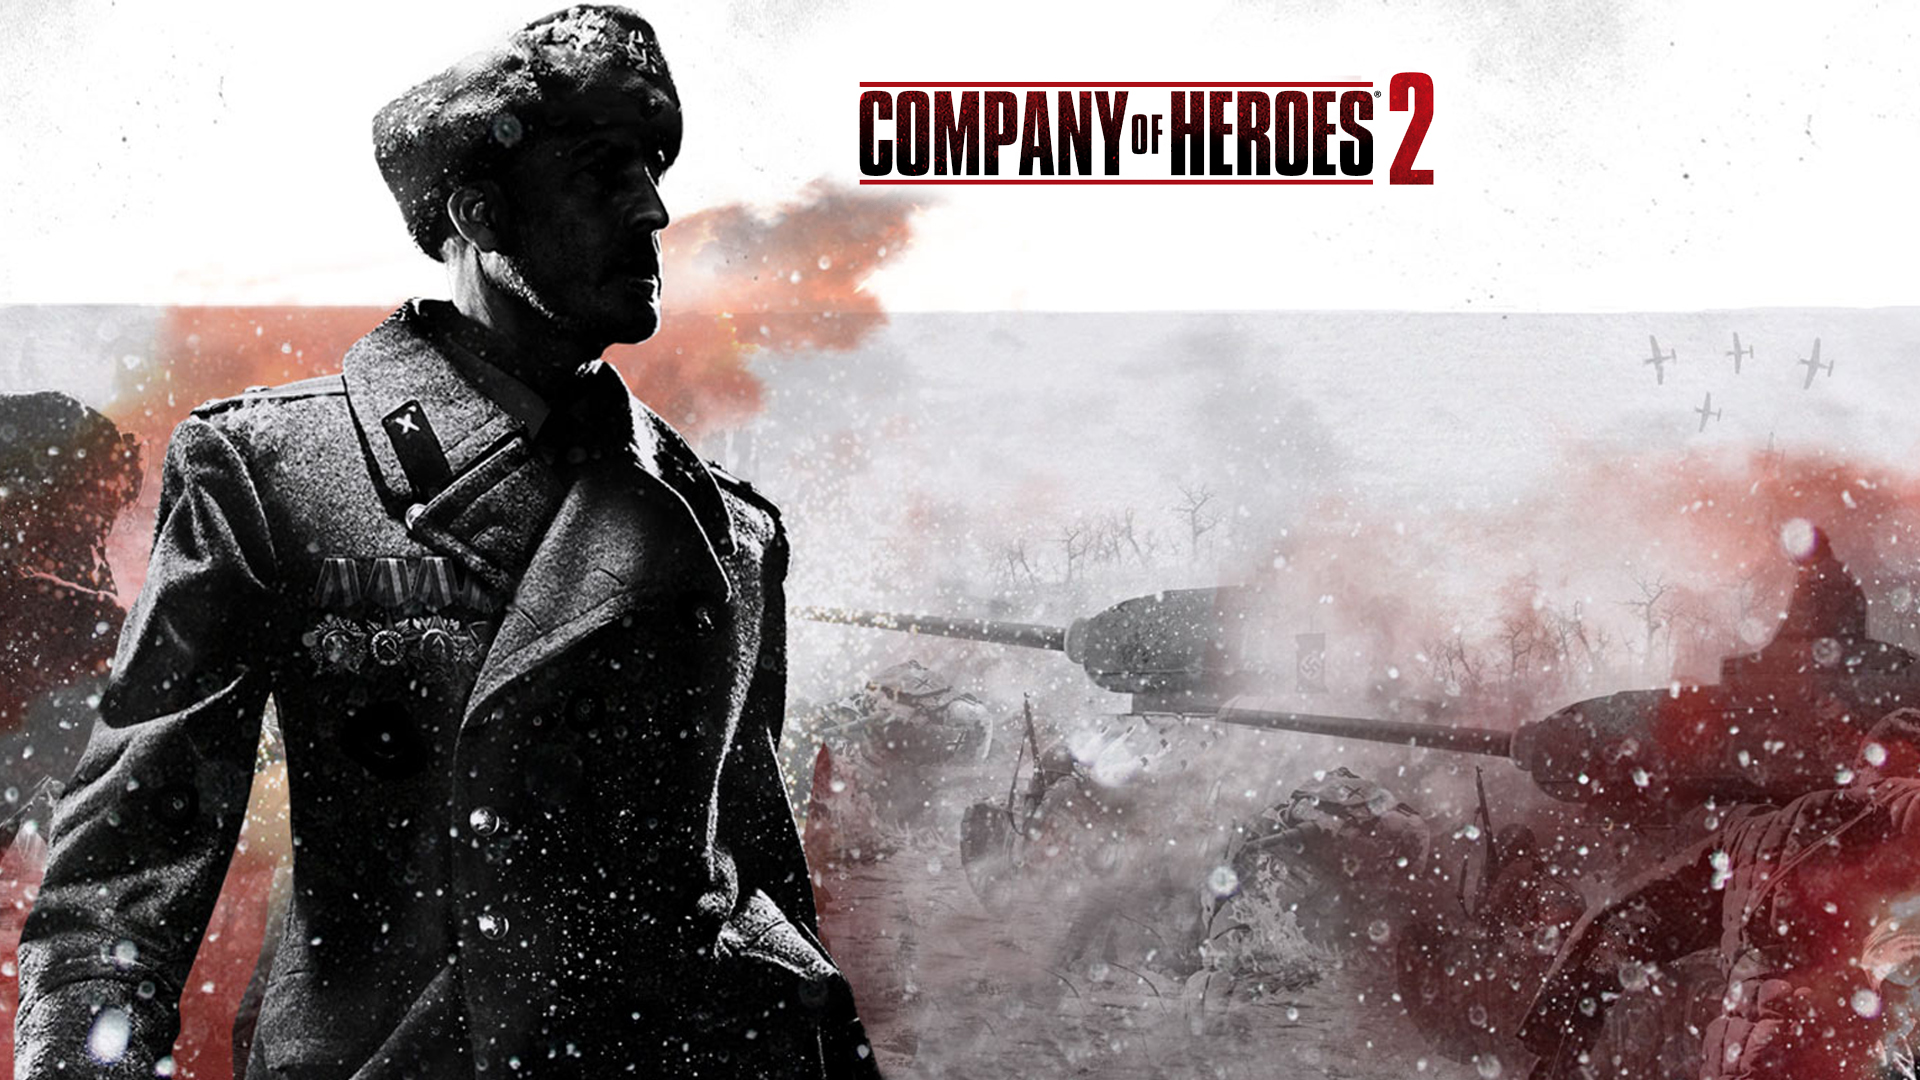 Company Of Heroes 2 439.22 Kb